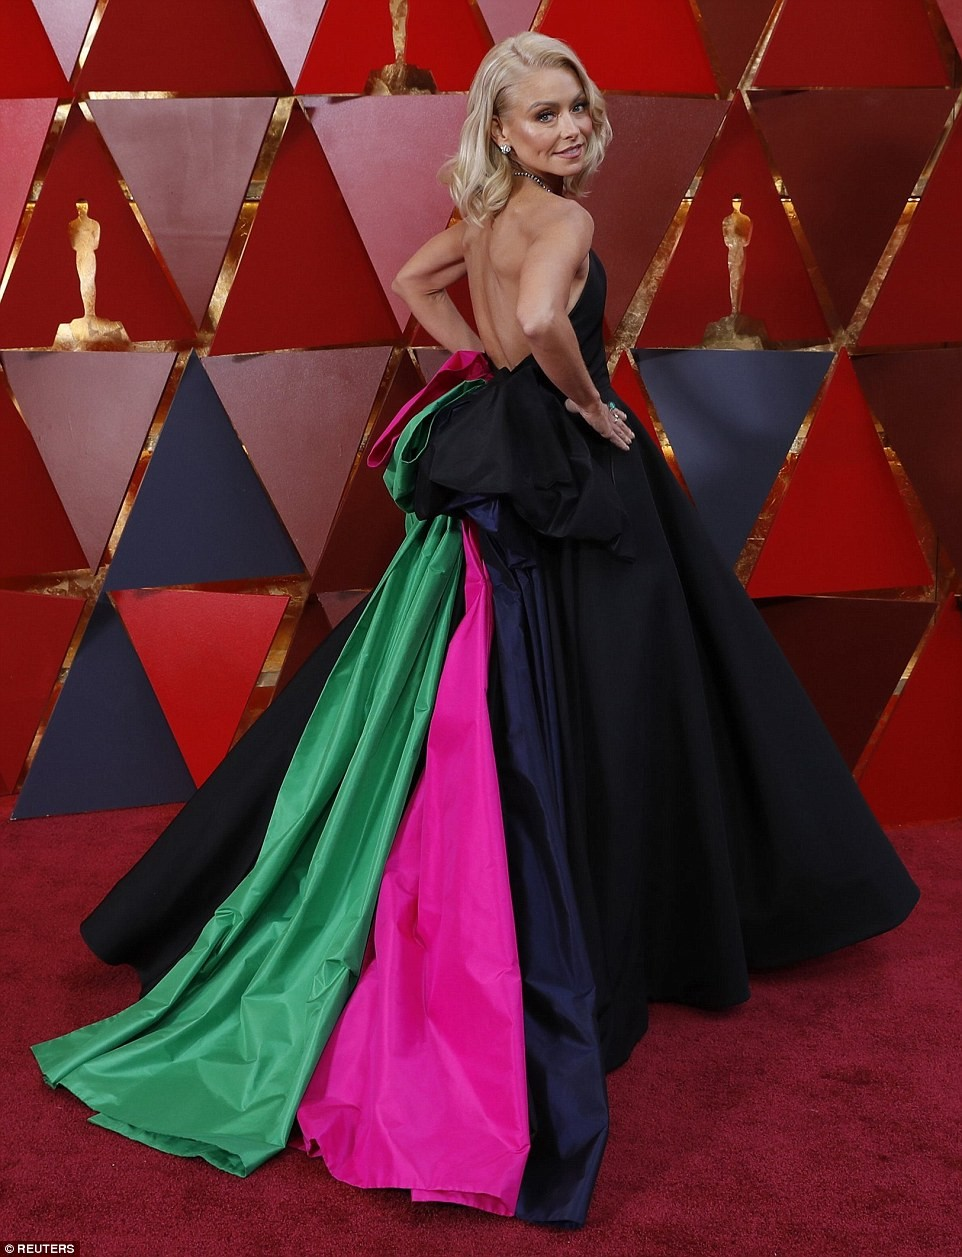 Here are the worst-dressed celebrities at the Oscars award (Photos)